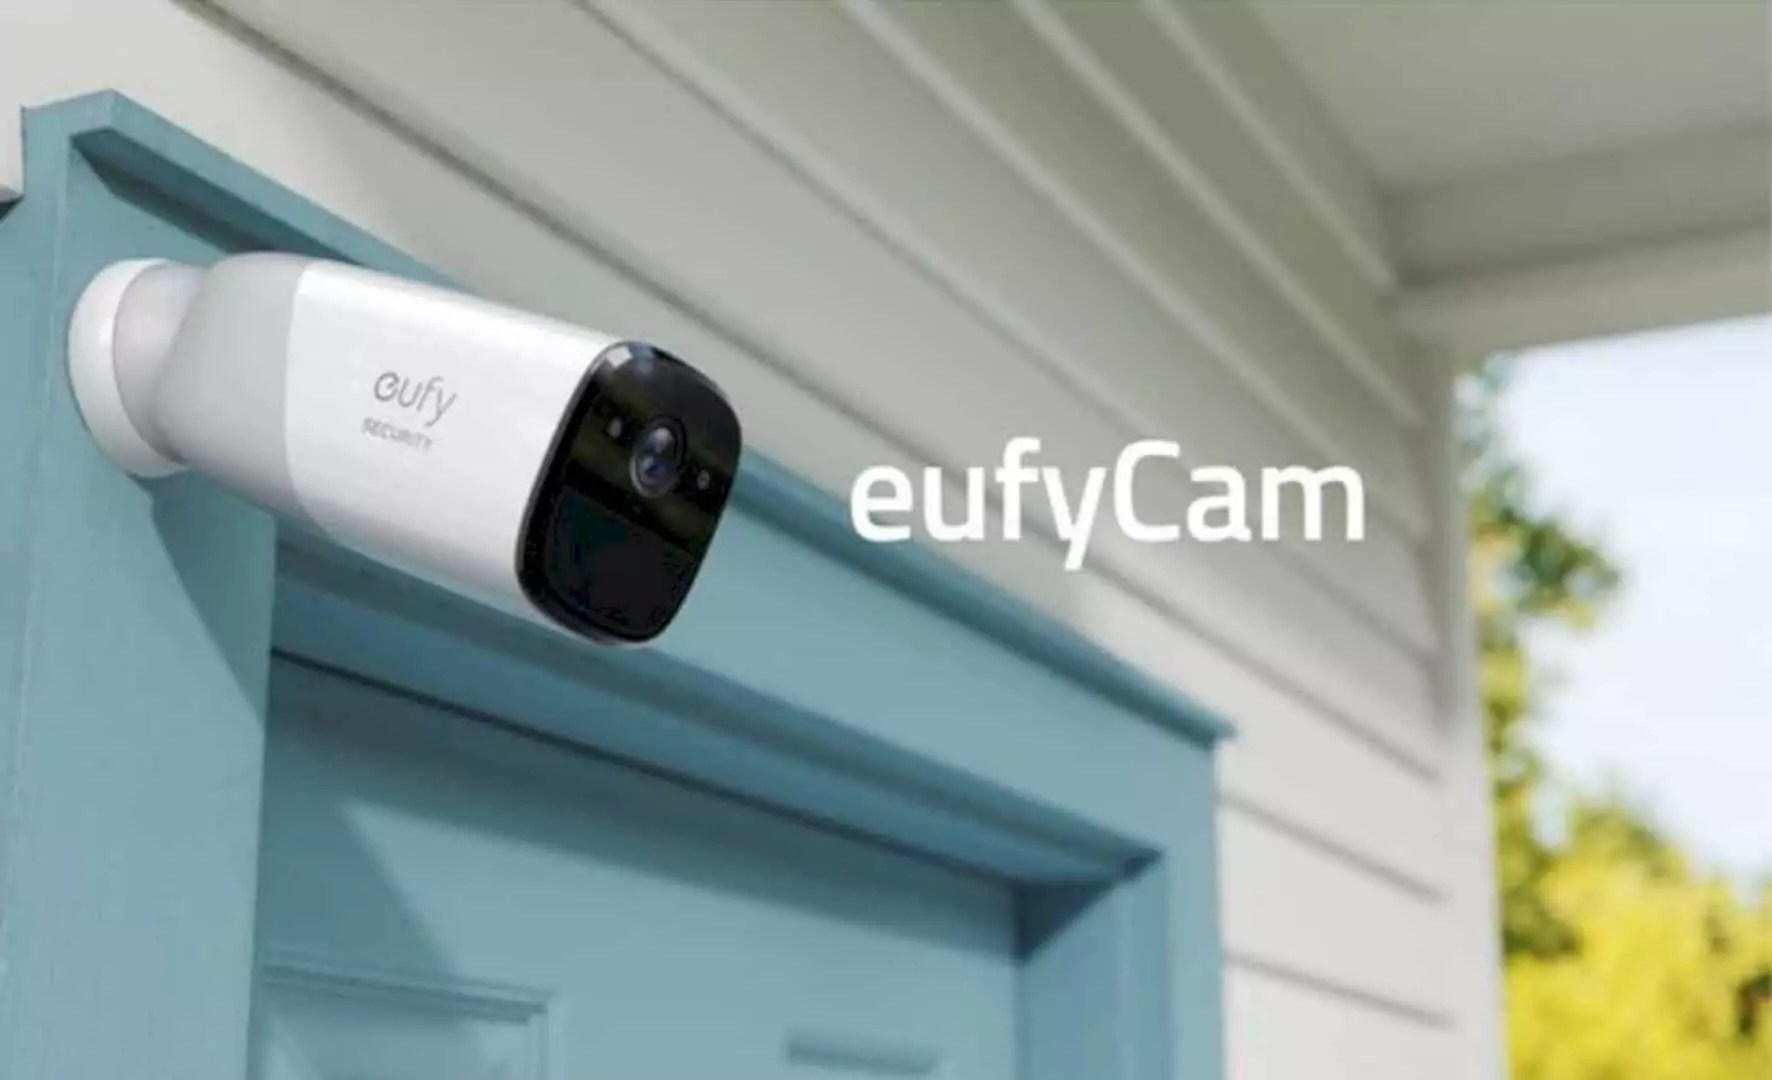 eufyCam: Wireless Security Camera with Facial Recognition Technology